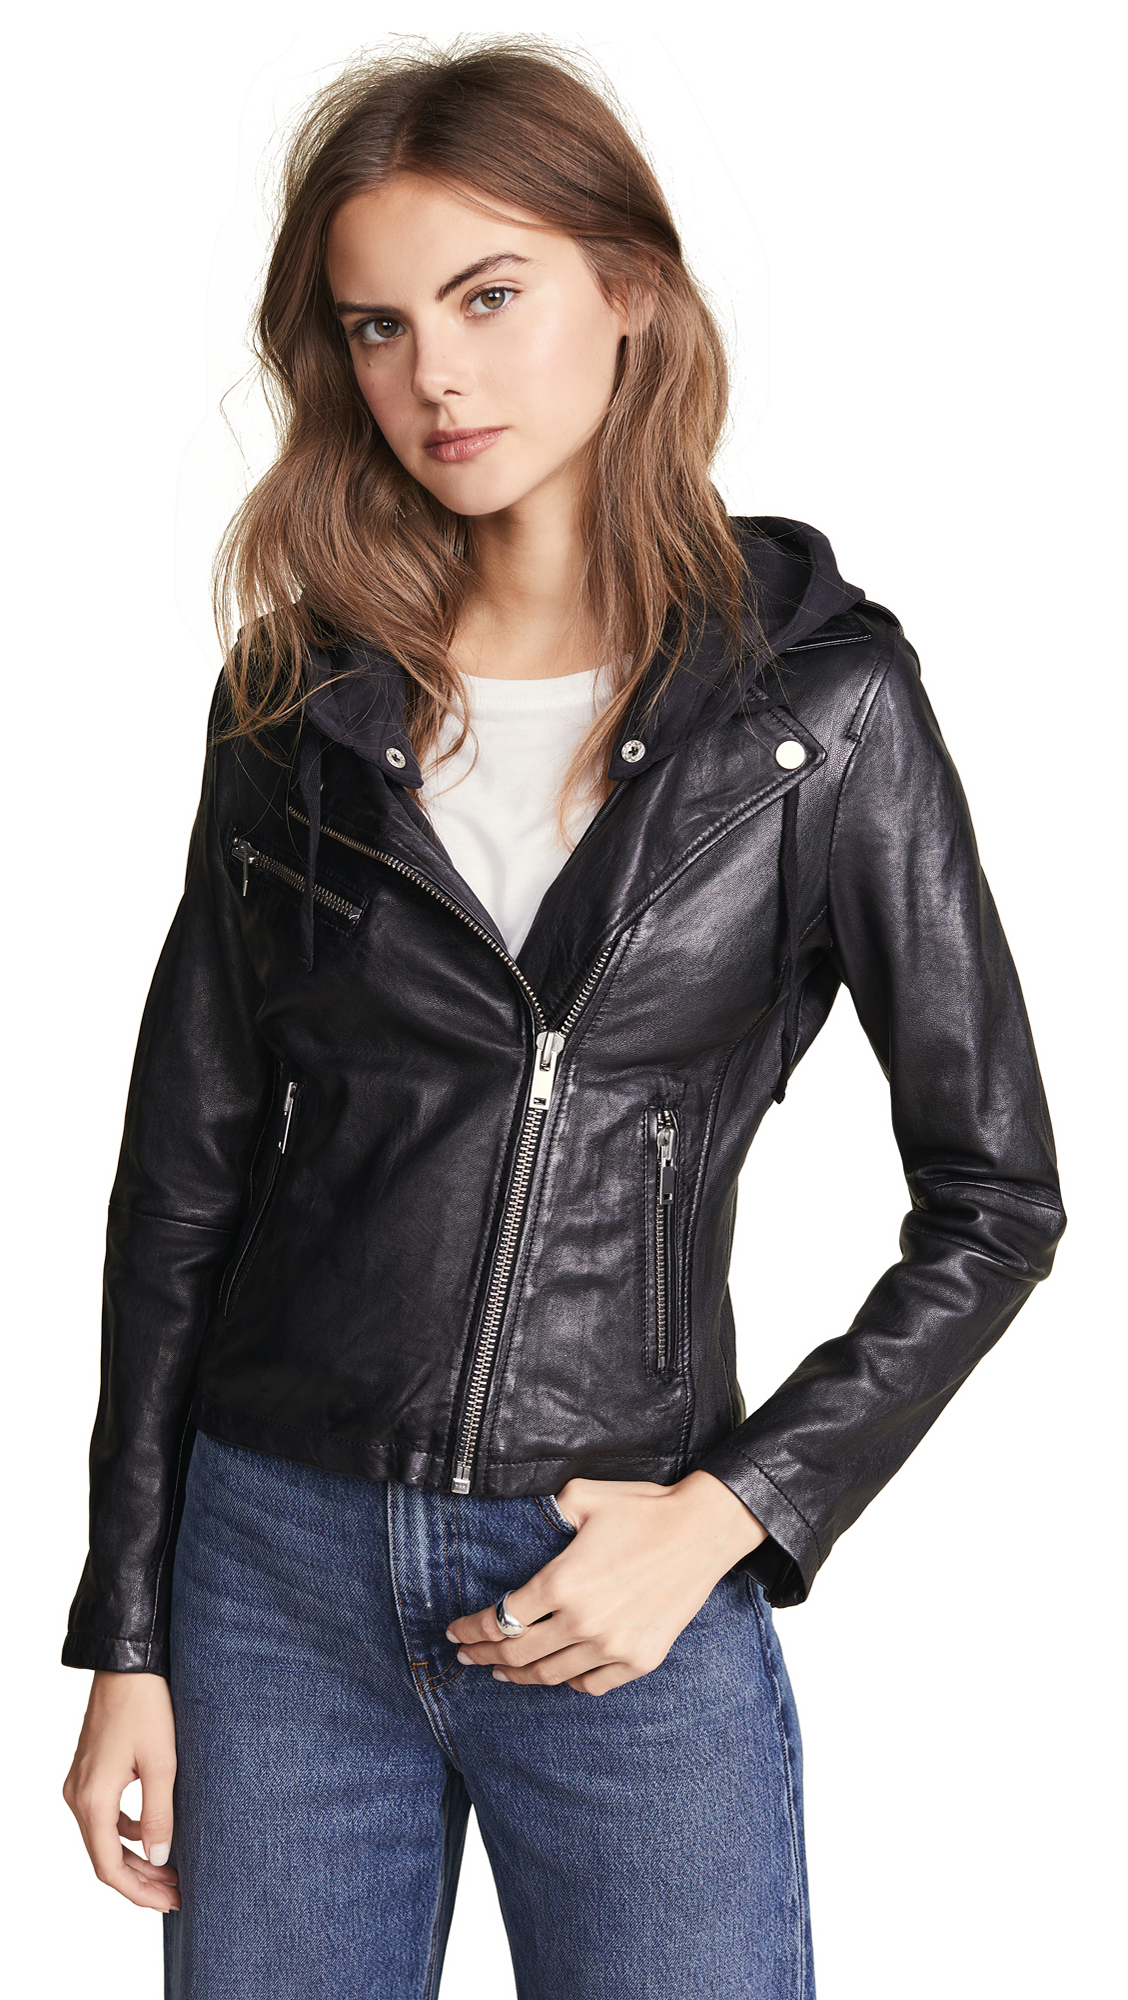 DOMA Hoodie Leather Jacket in Black